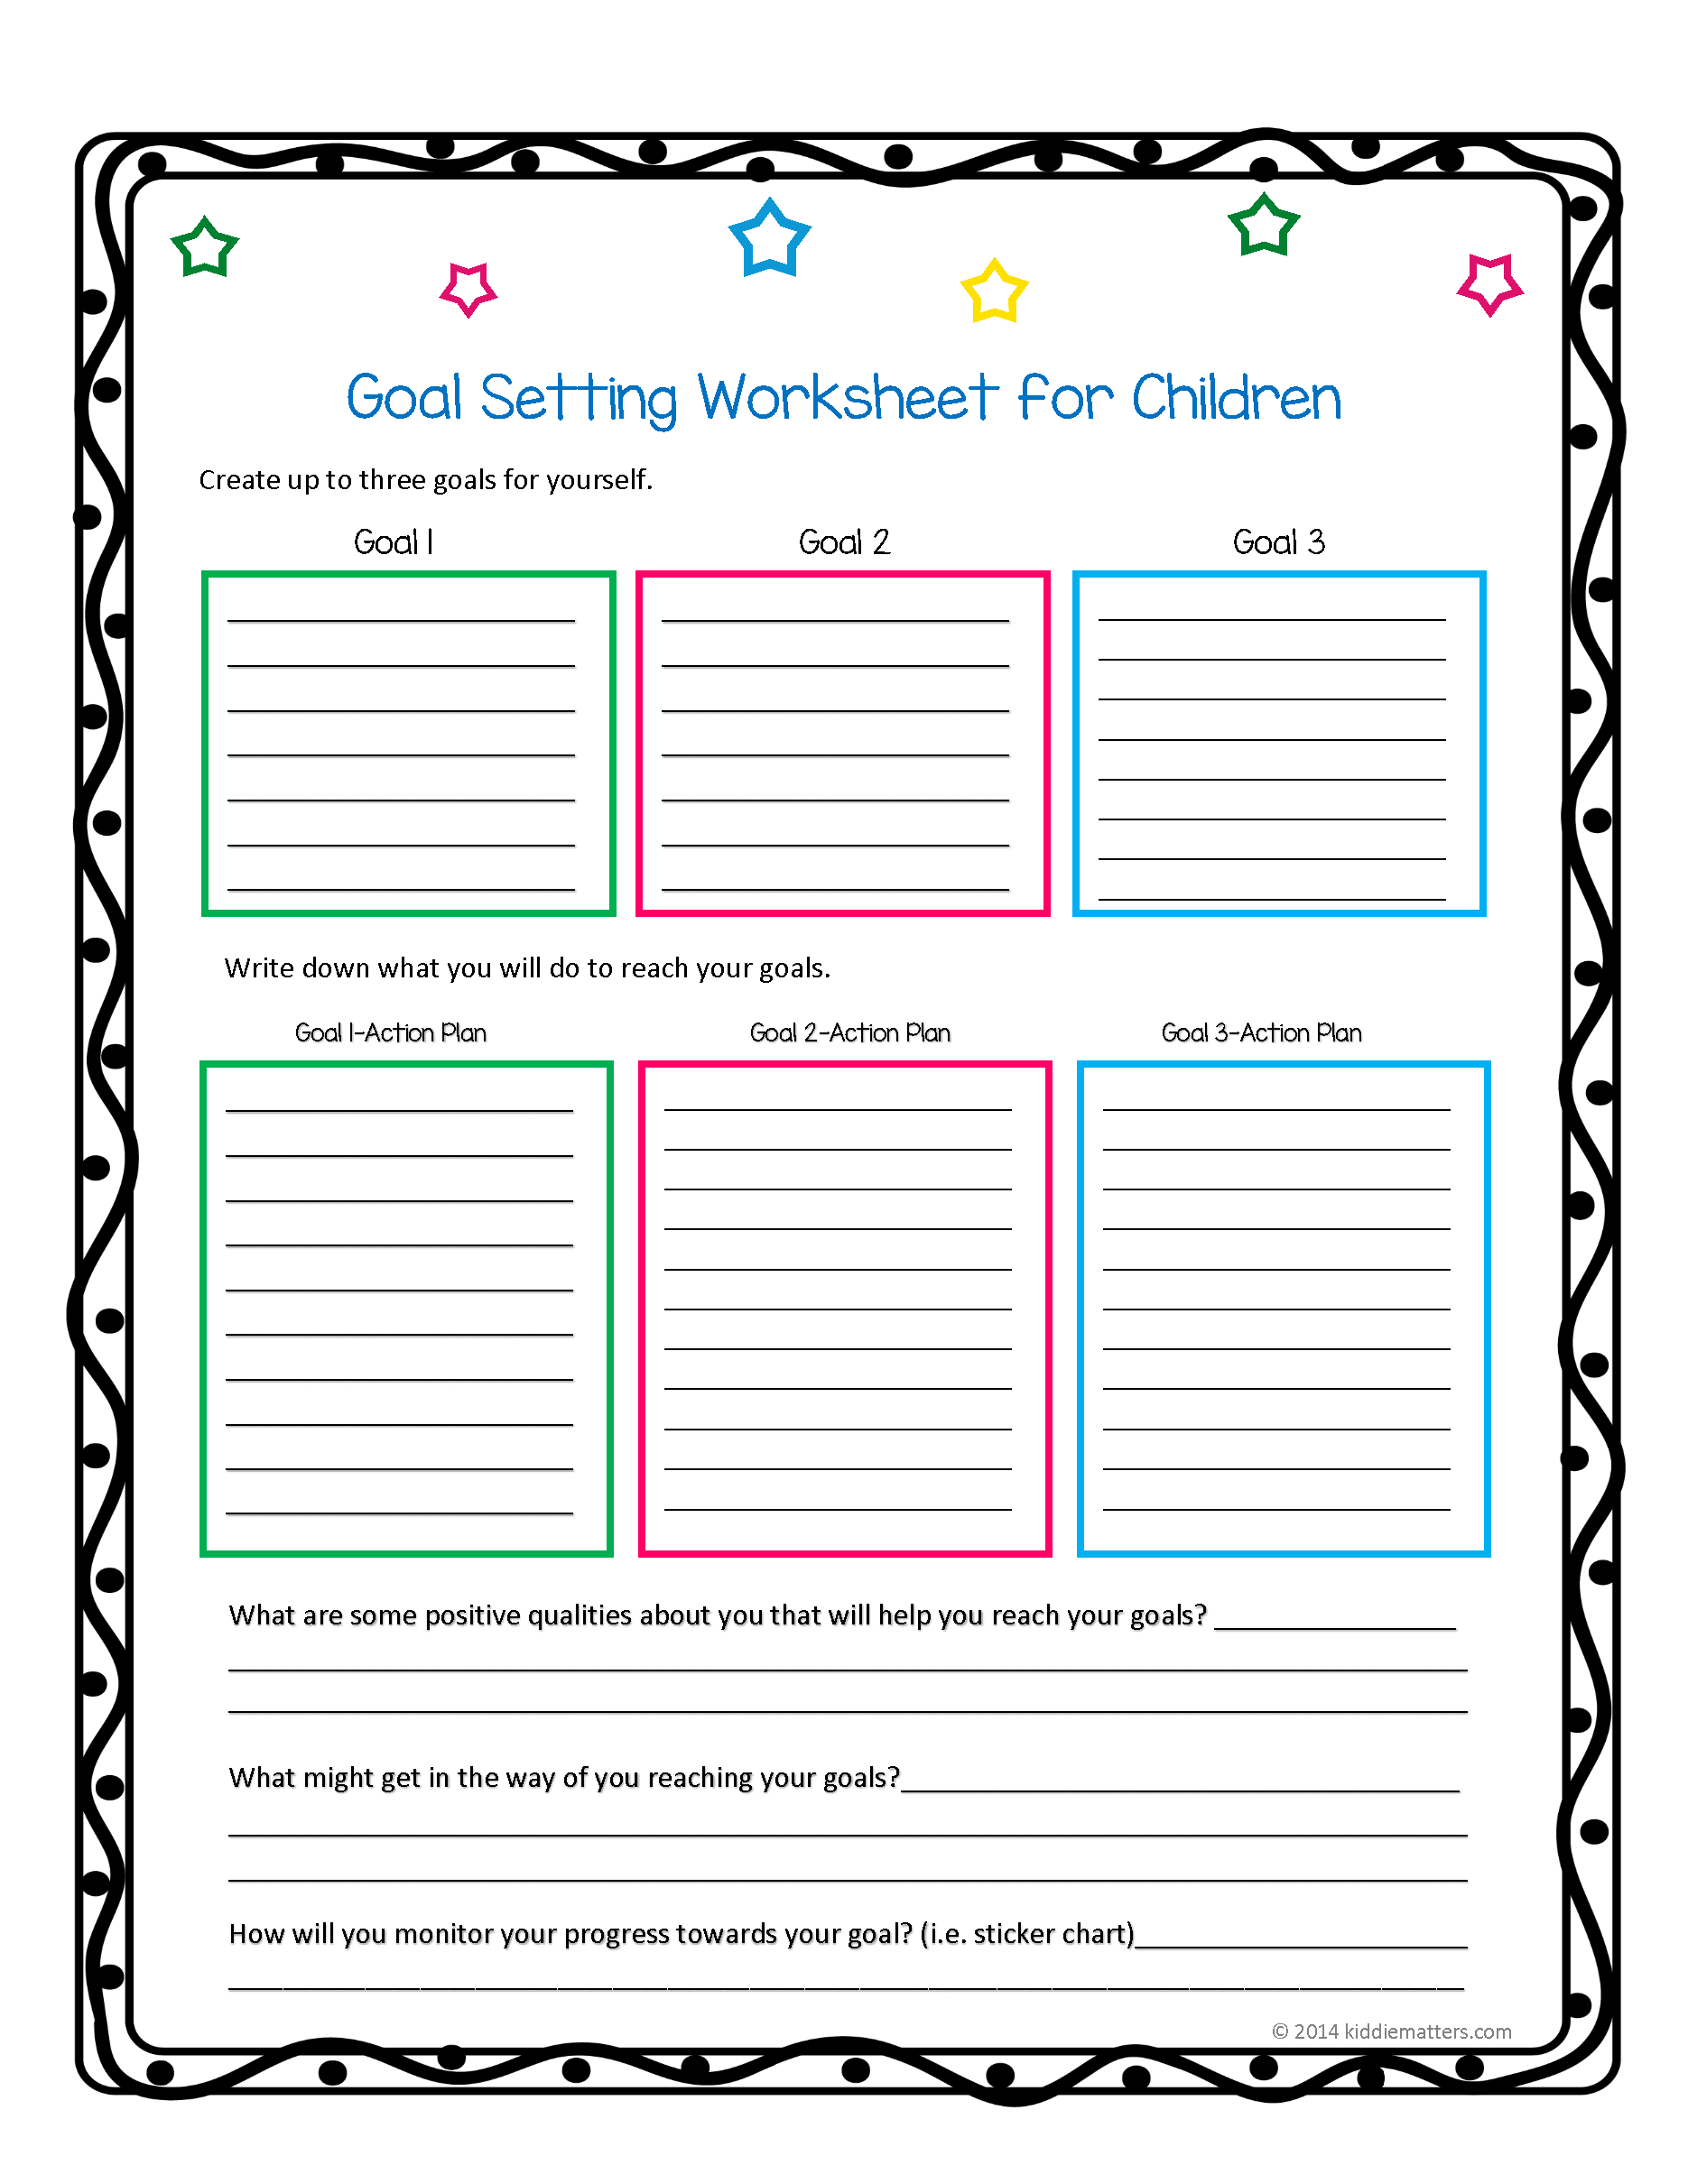 This Worksheet And Free Printable Helps Children Learn How To Set | Free Printable Goal Setting Worksheets For Students